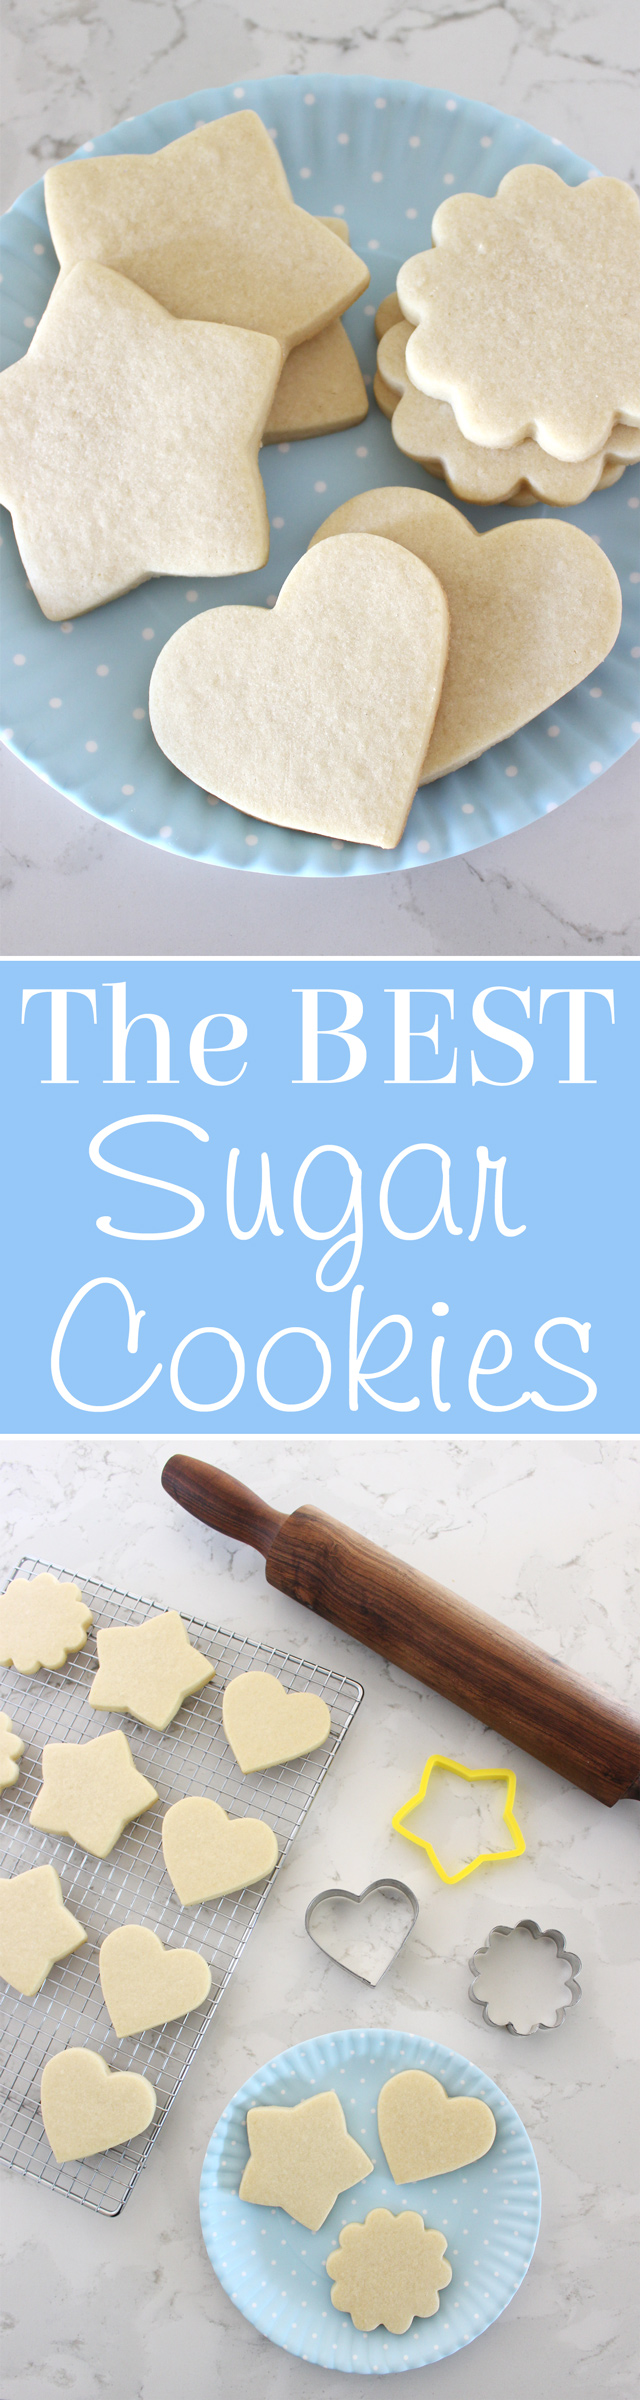 Simply the BEST Sugar Cookie Recipe ever!!